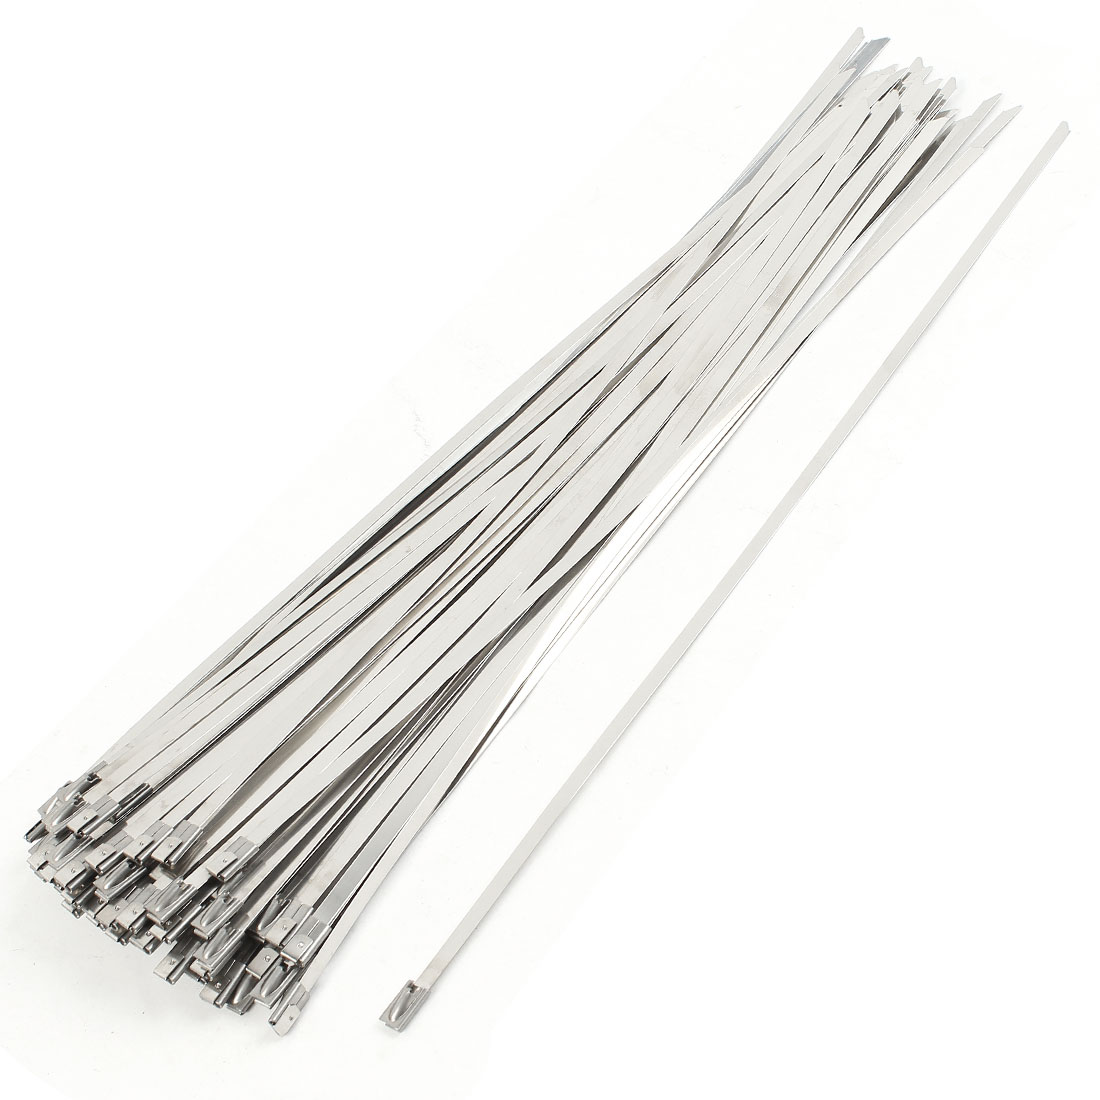 100Pcs Stainless Steel Coated Zip Cable Tie 300x4.6mm for Pipe Hose